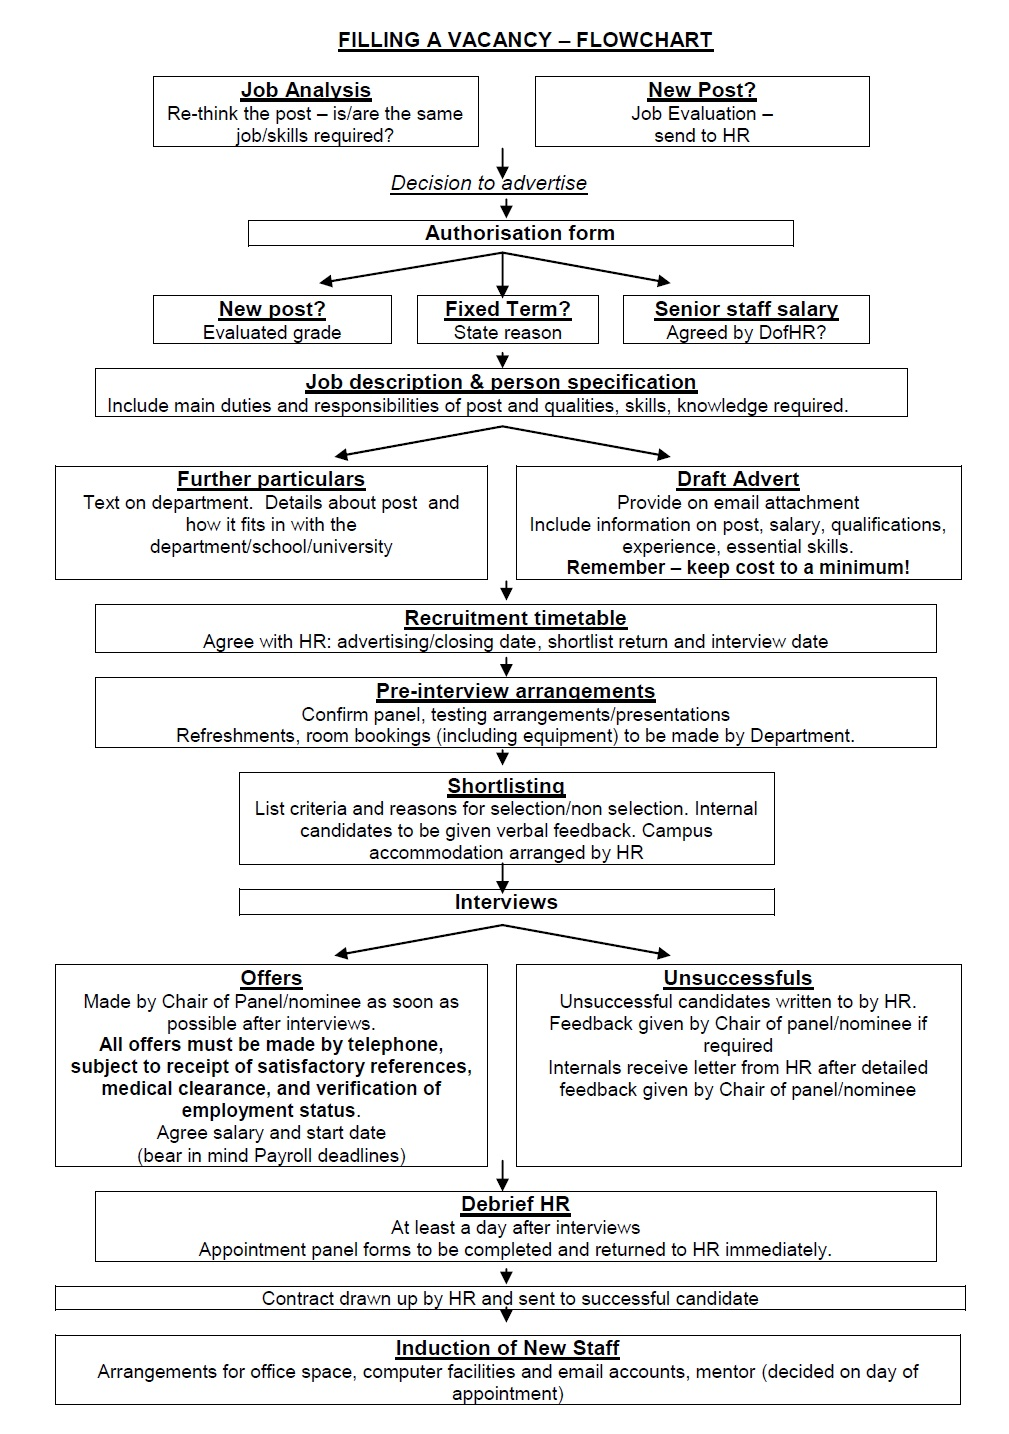 Interview questions tips how to clear interviews job interview job interview flowchart nvjuhfo Choice Image